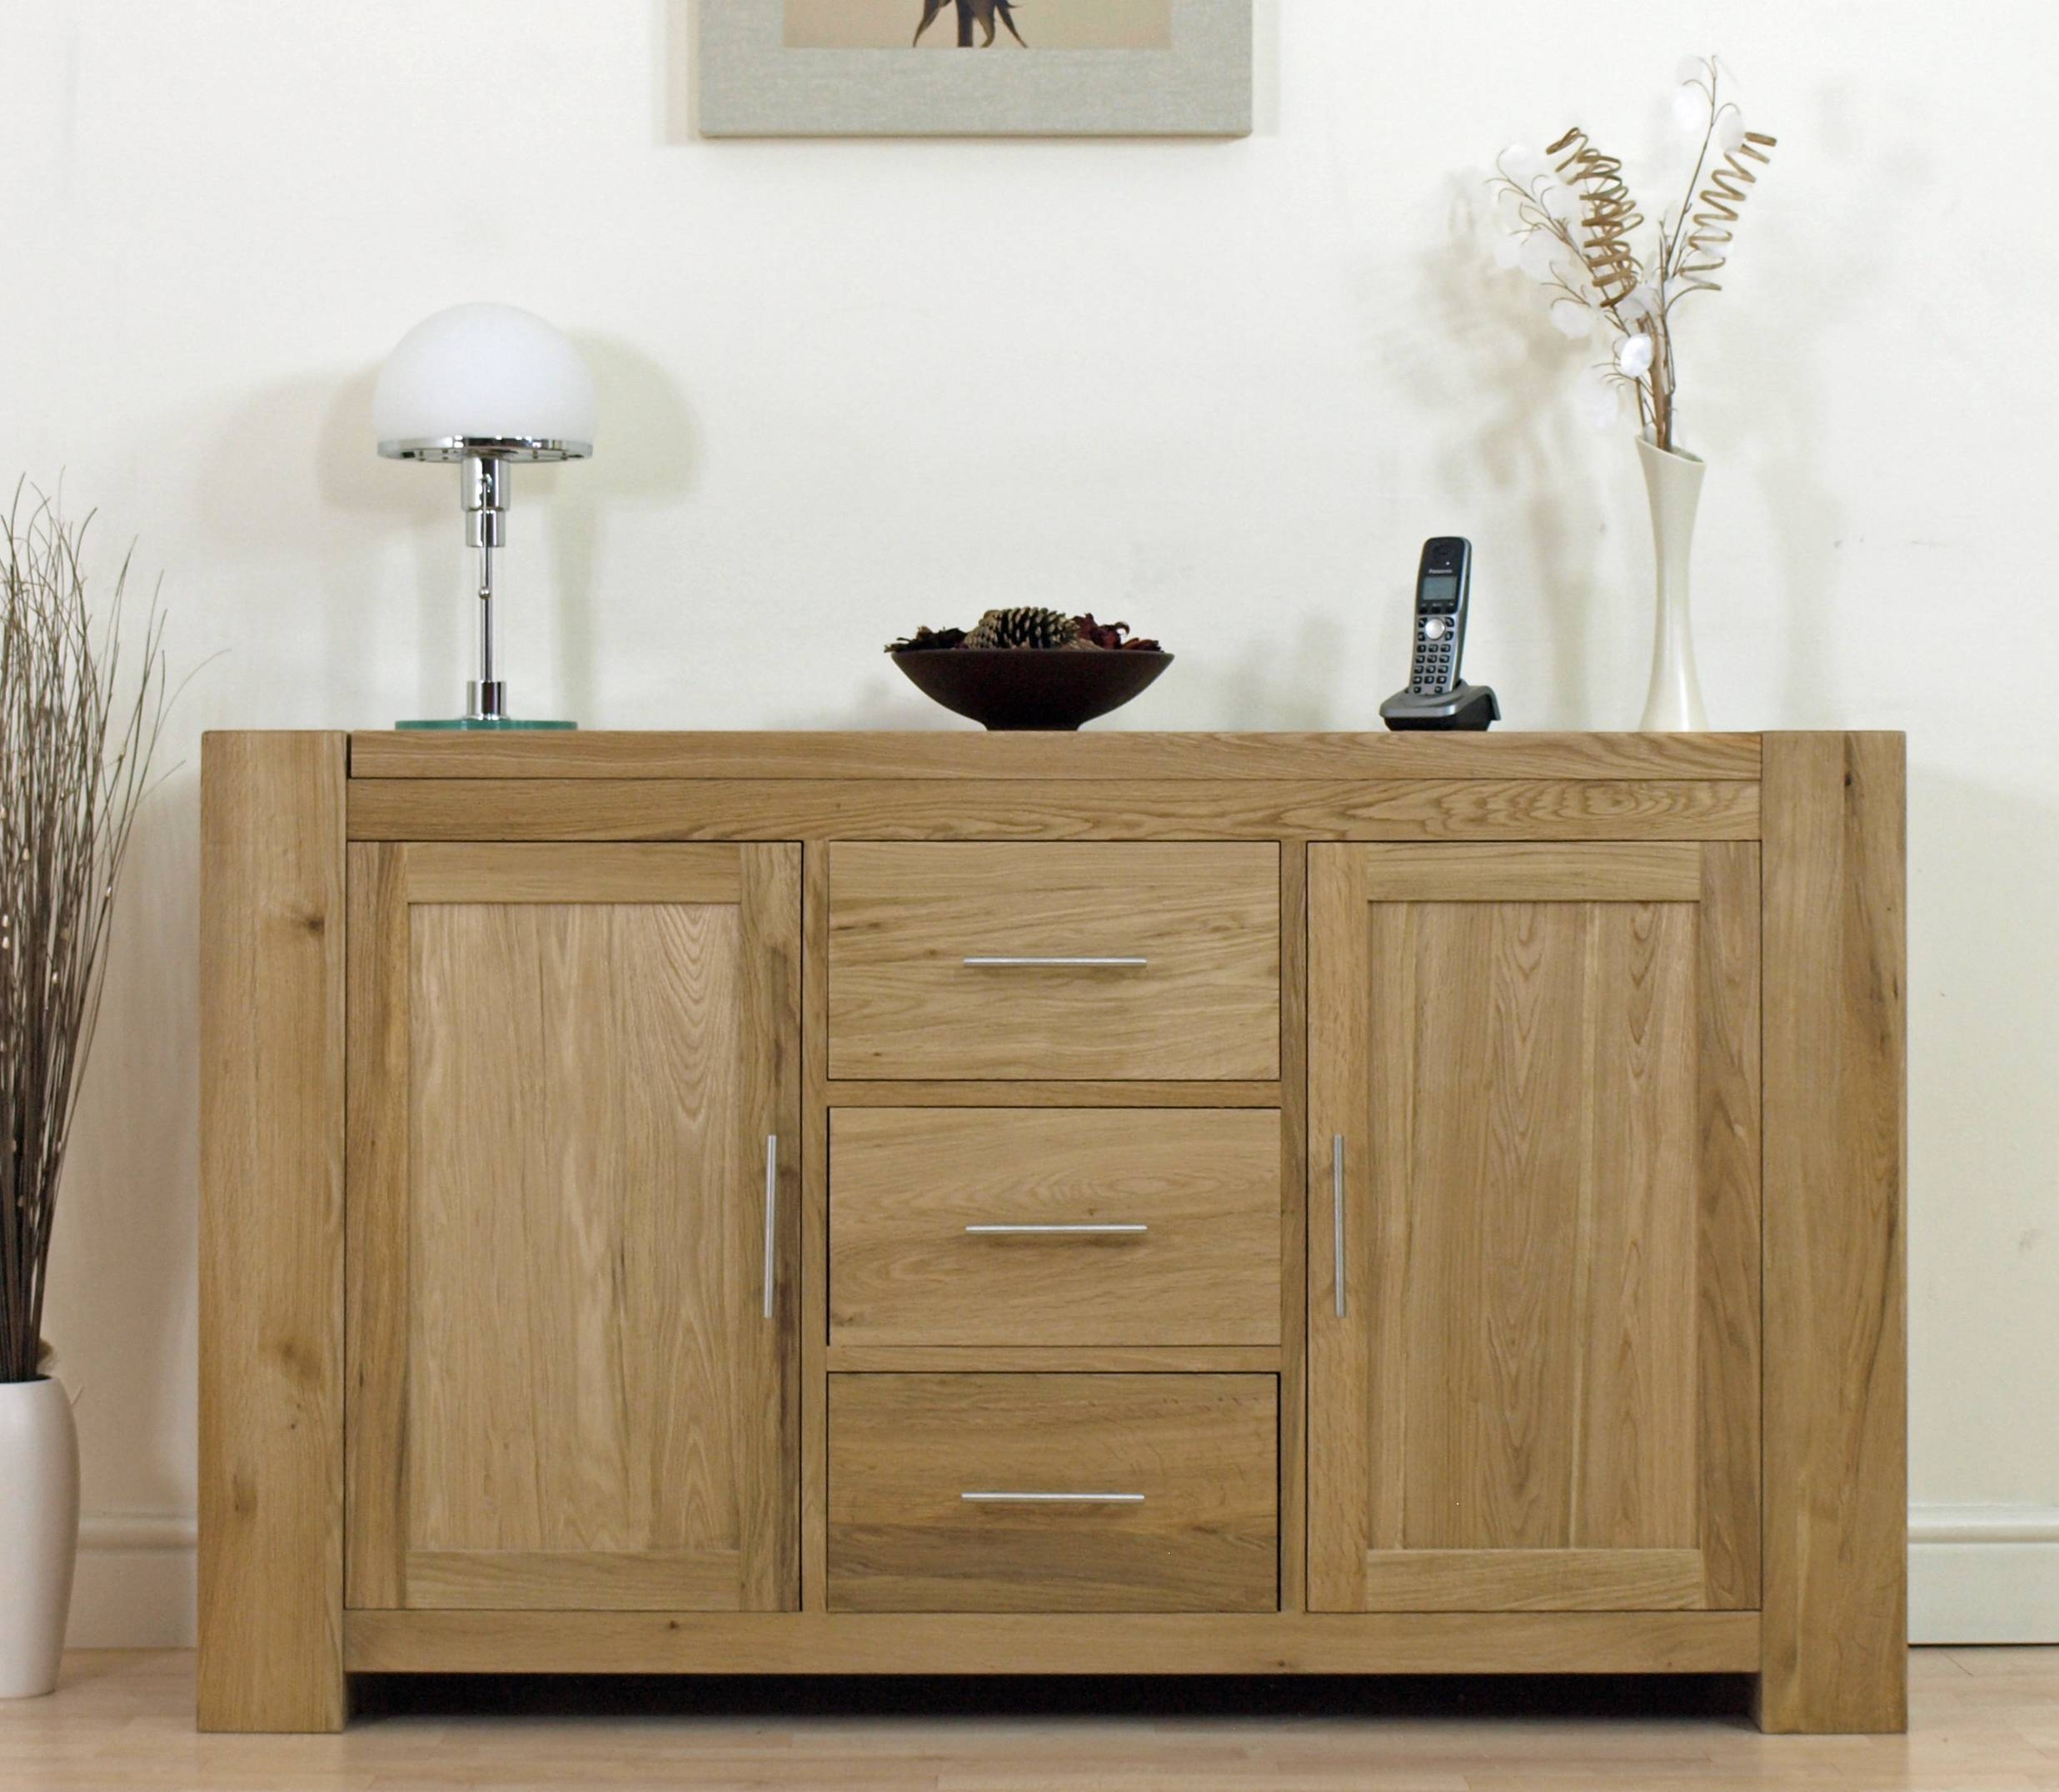 Solid Oak Sideboard Is Your First Choice Living Room Furniture – Hgnv Within Oak Sideboards (#15 of 20)